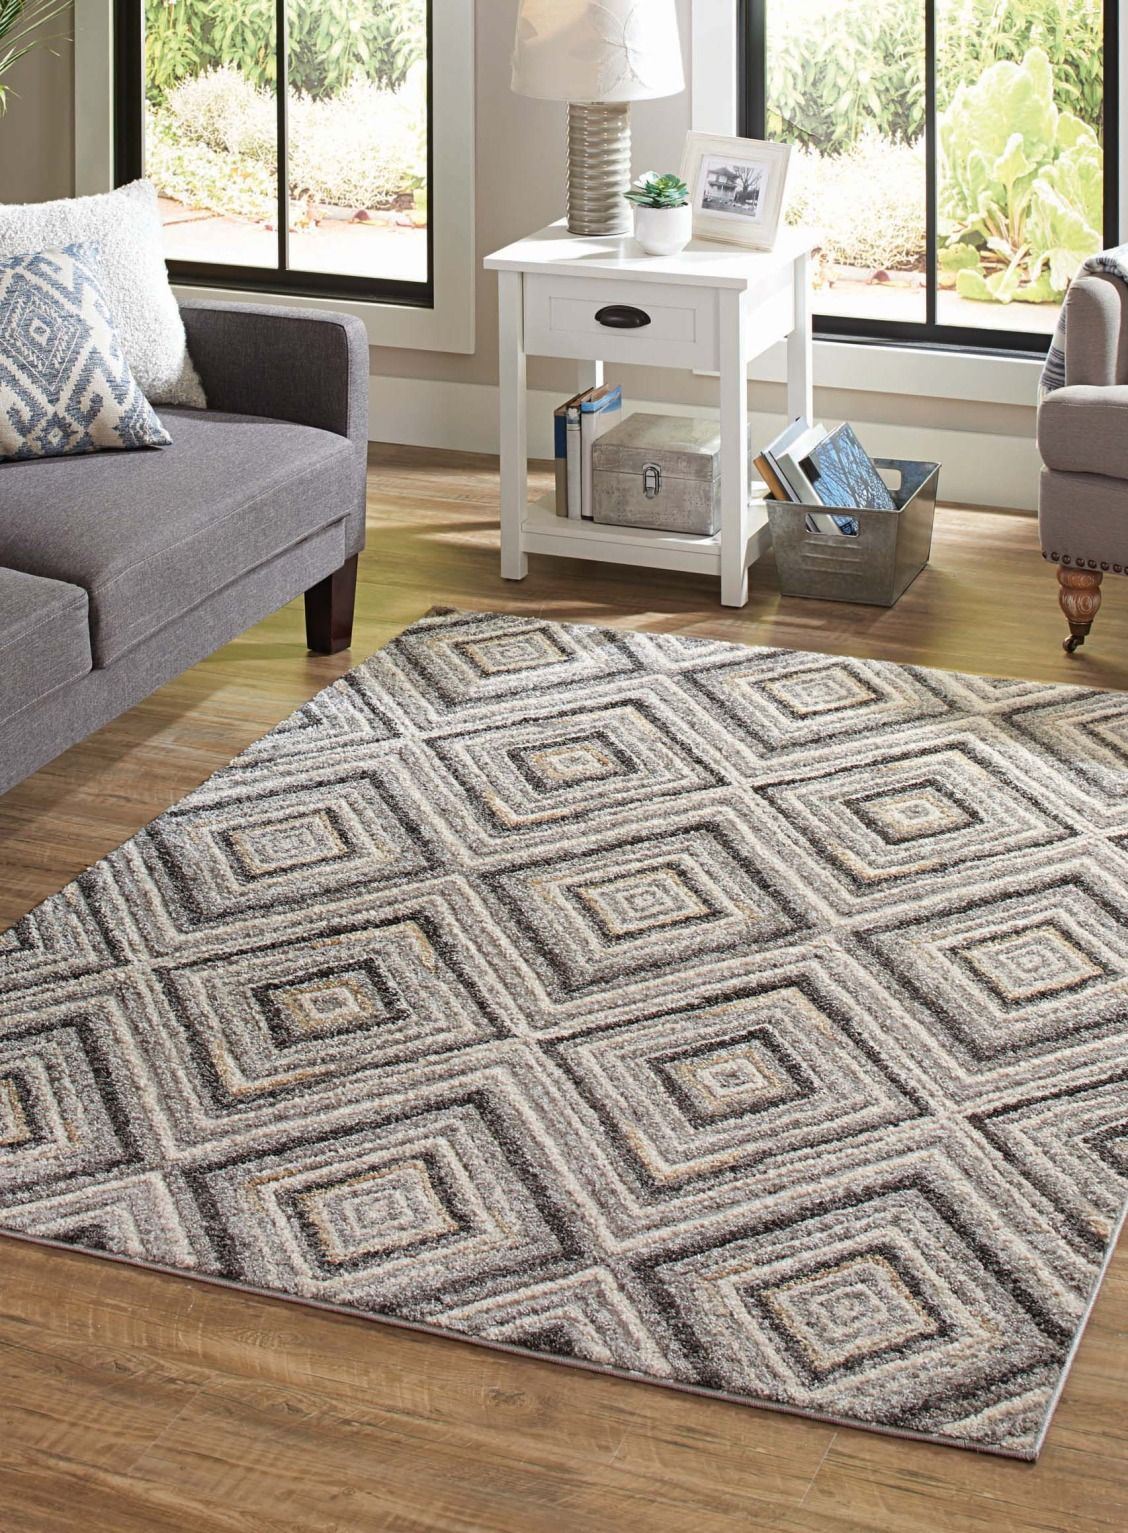 garden rugs hydraz home less gardens and on ridge pottery images decorate for better club best area homes rug